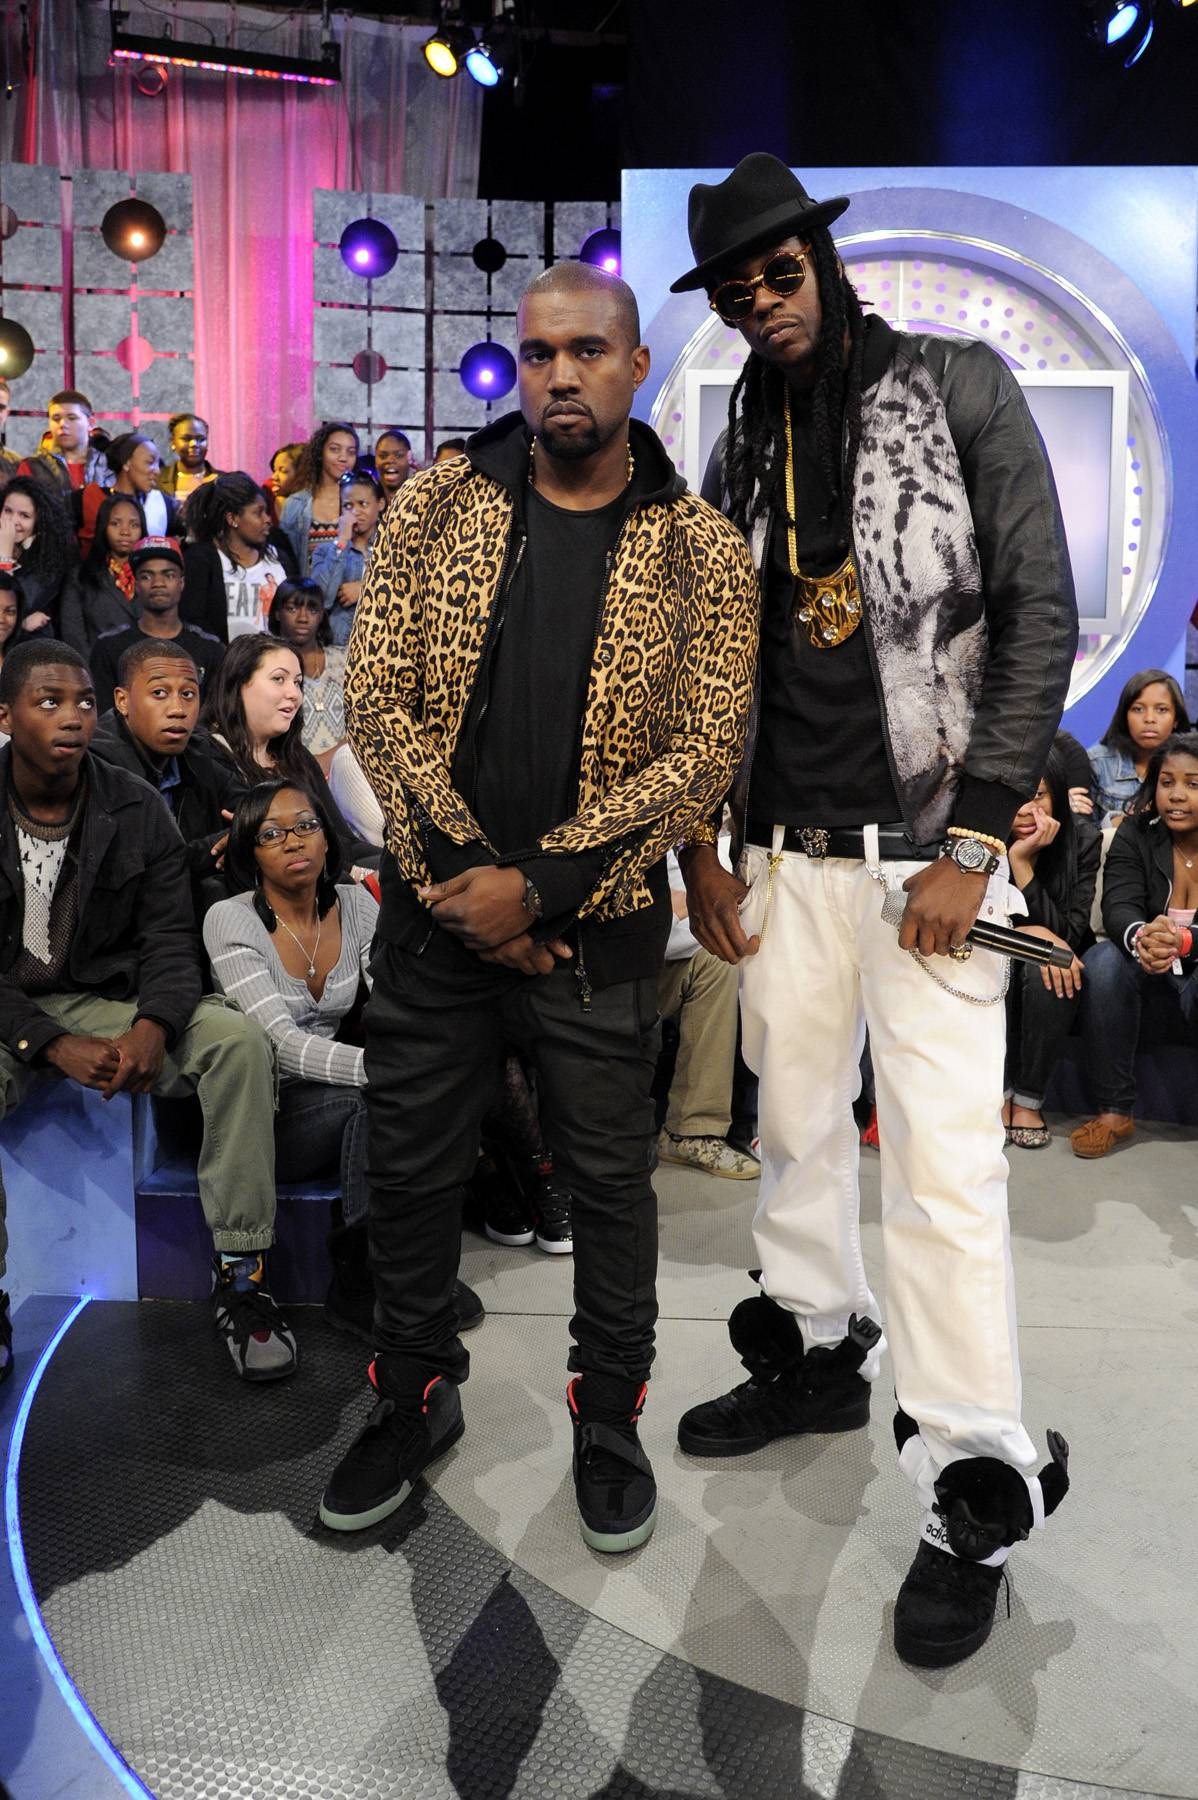 2 Dope - Kanye West and 2 Chainz at 106 & Park, April 9, 2012. (photo: John Ricard / BET)